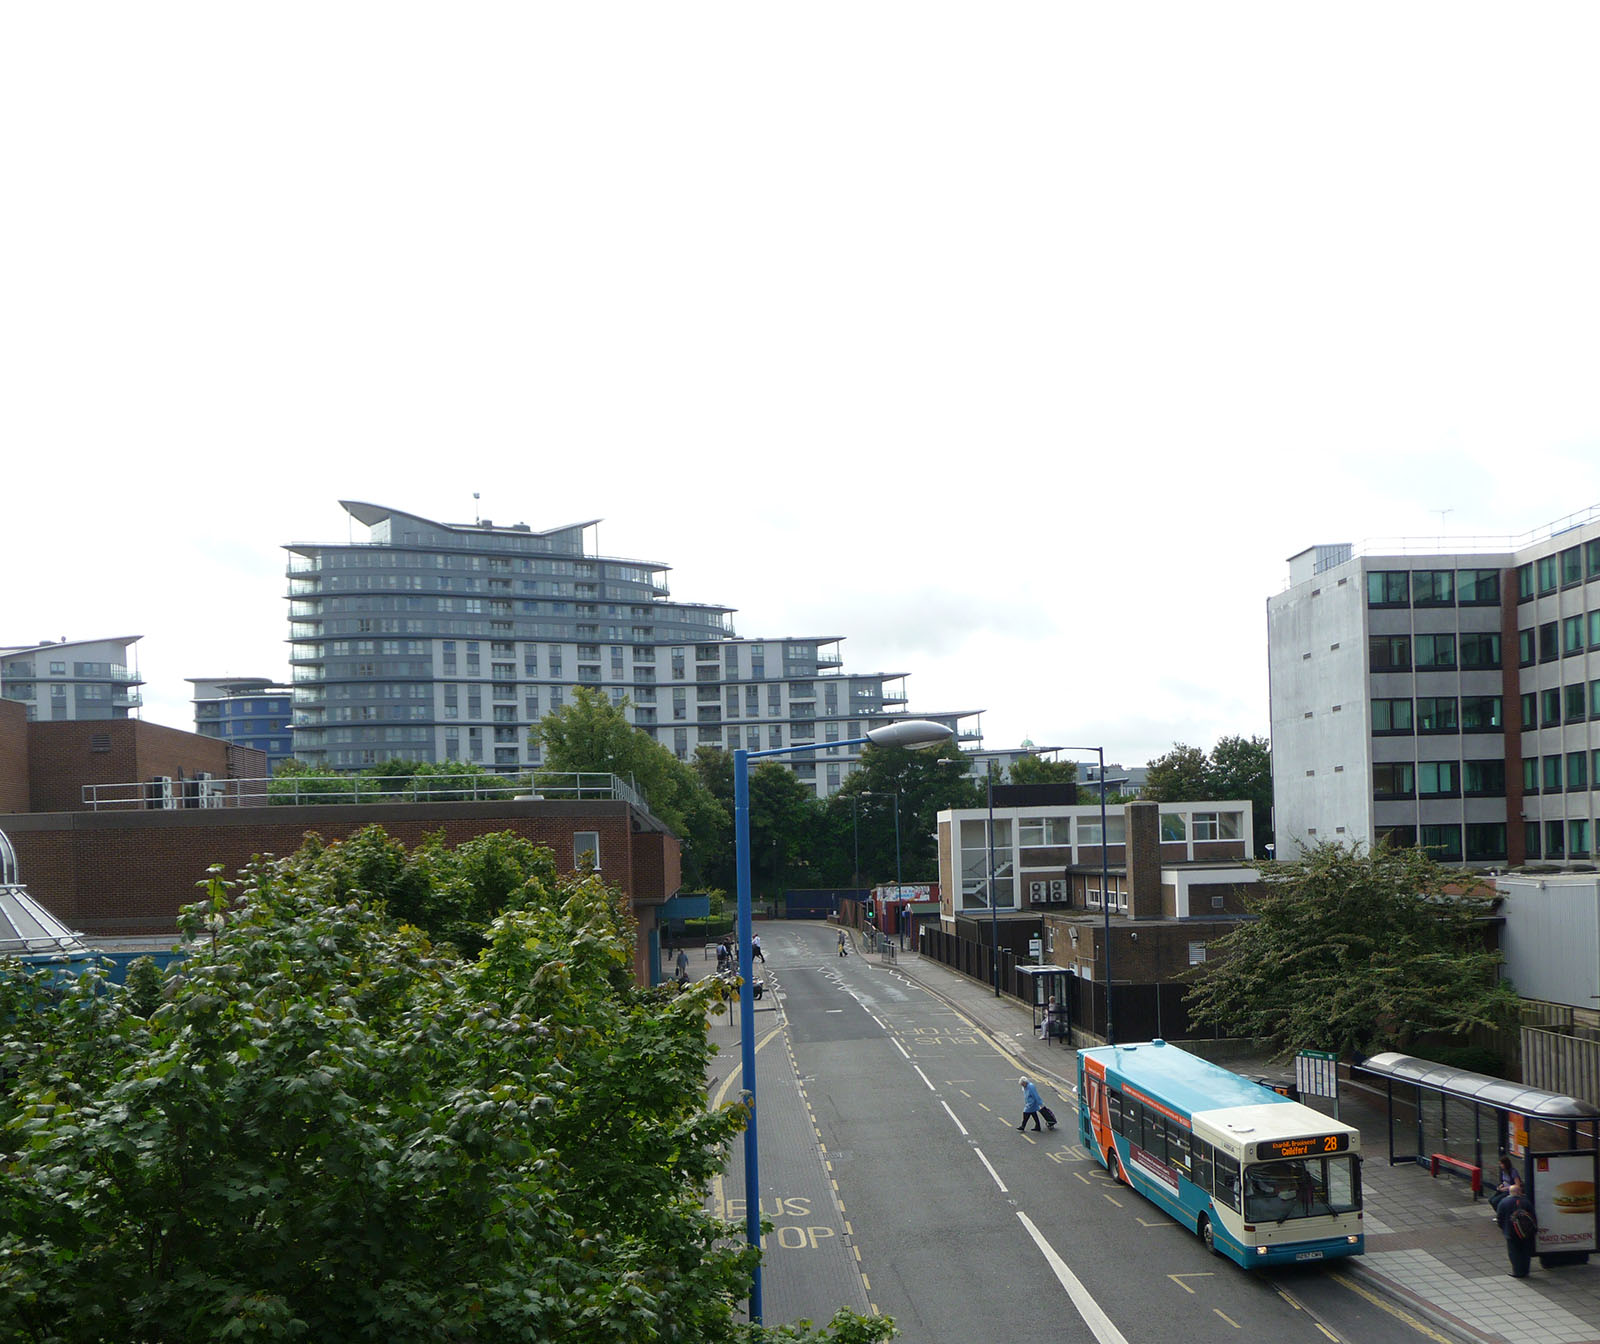 Looking out over Woking's recognisable modern apartments from Cawsey Way.